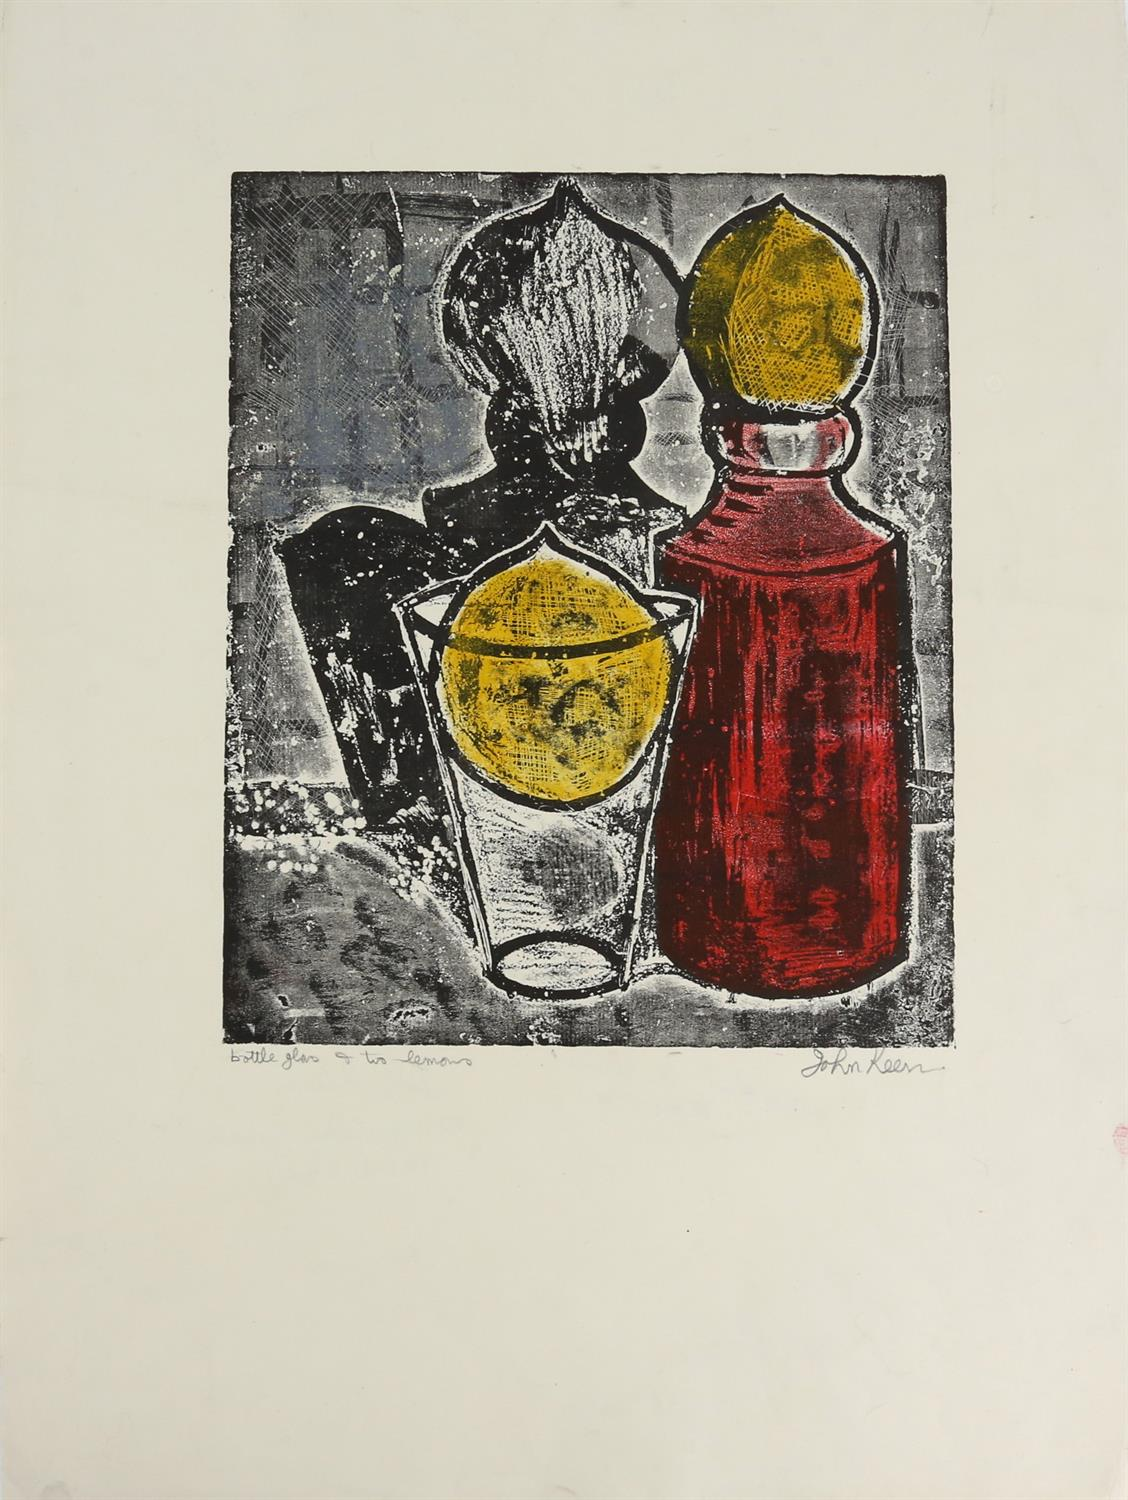 John Keen (British, 1924-2019). 'Bottle Glass & Two Lemons', print in colours, signed and titled. - Image 2 of 3